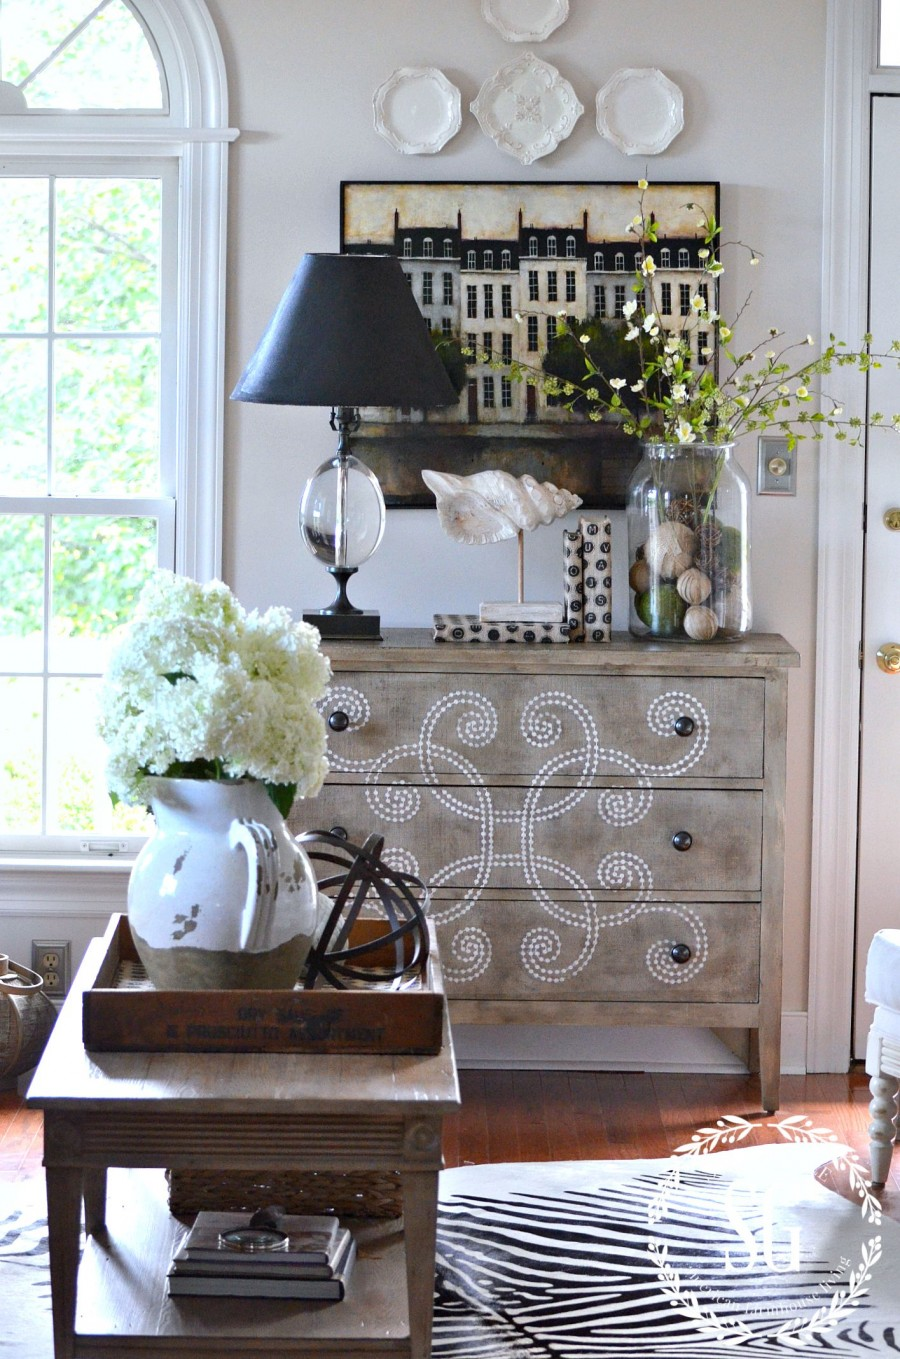 10 tips for decorating on a budget stonegable - Decorating on a budget ...